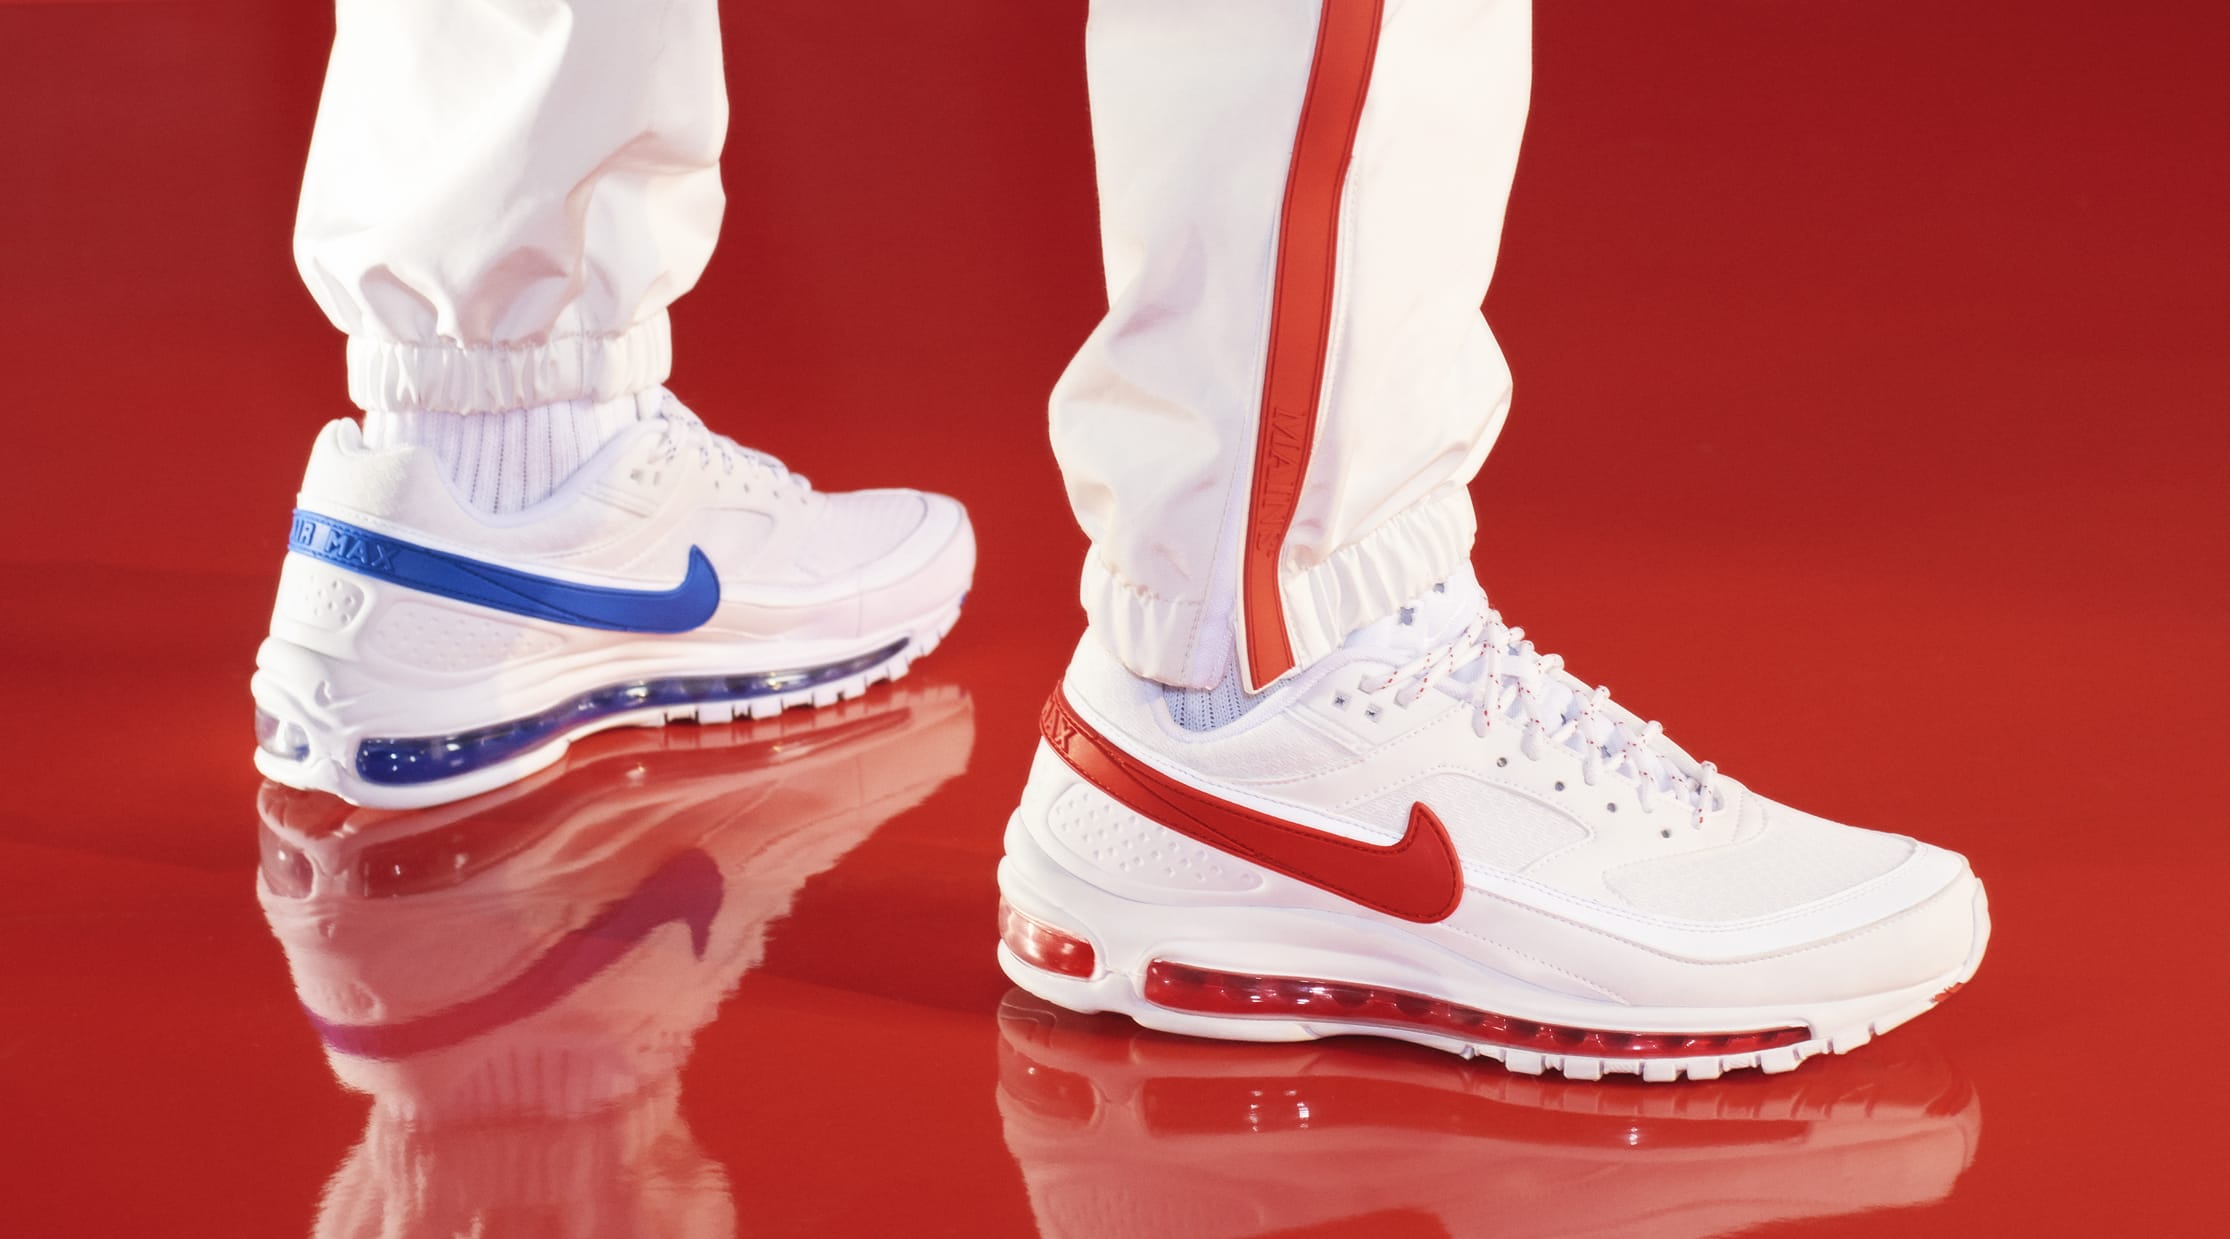 Skepta x Nike Air Mad 97 BW SK (On-Foot Red)